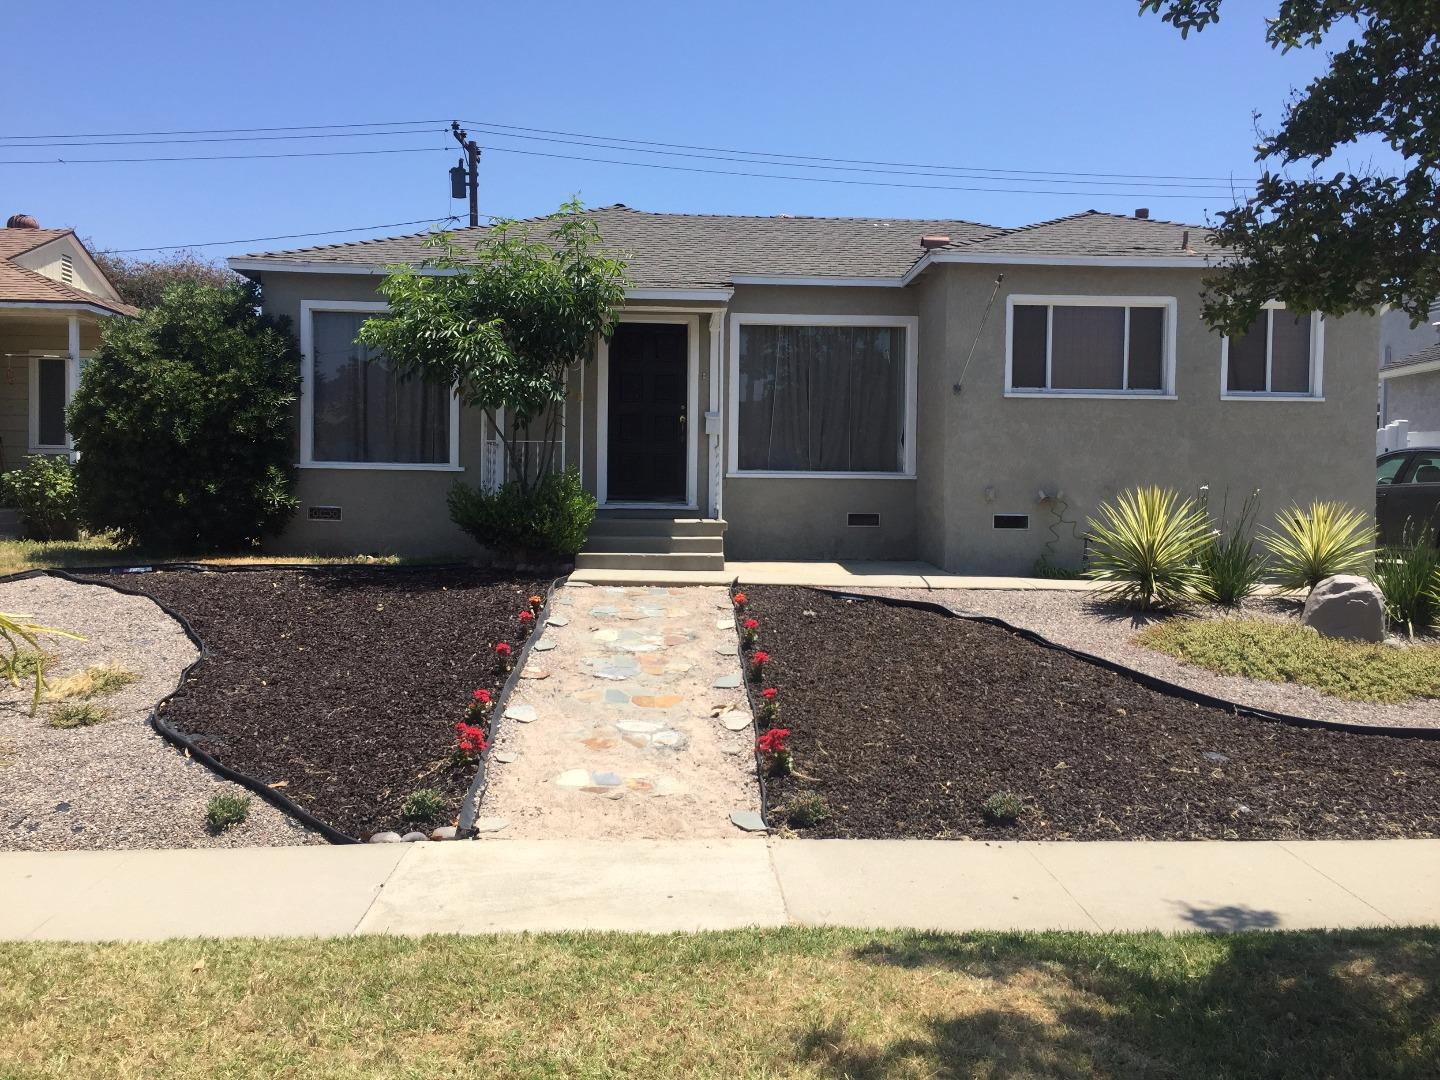 Single Family Home for Sale at 4450 Levelside Avenue Lakewood, California 90712 United States